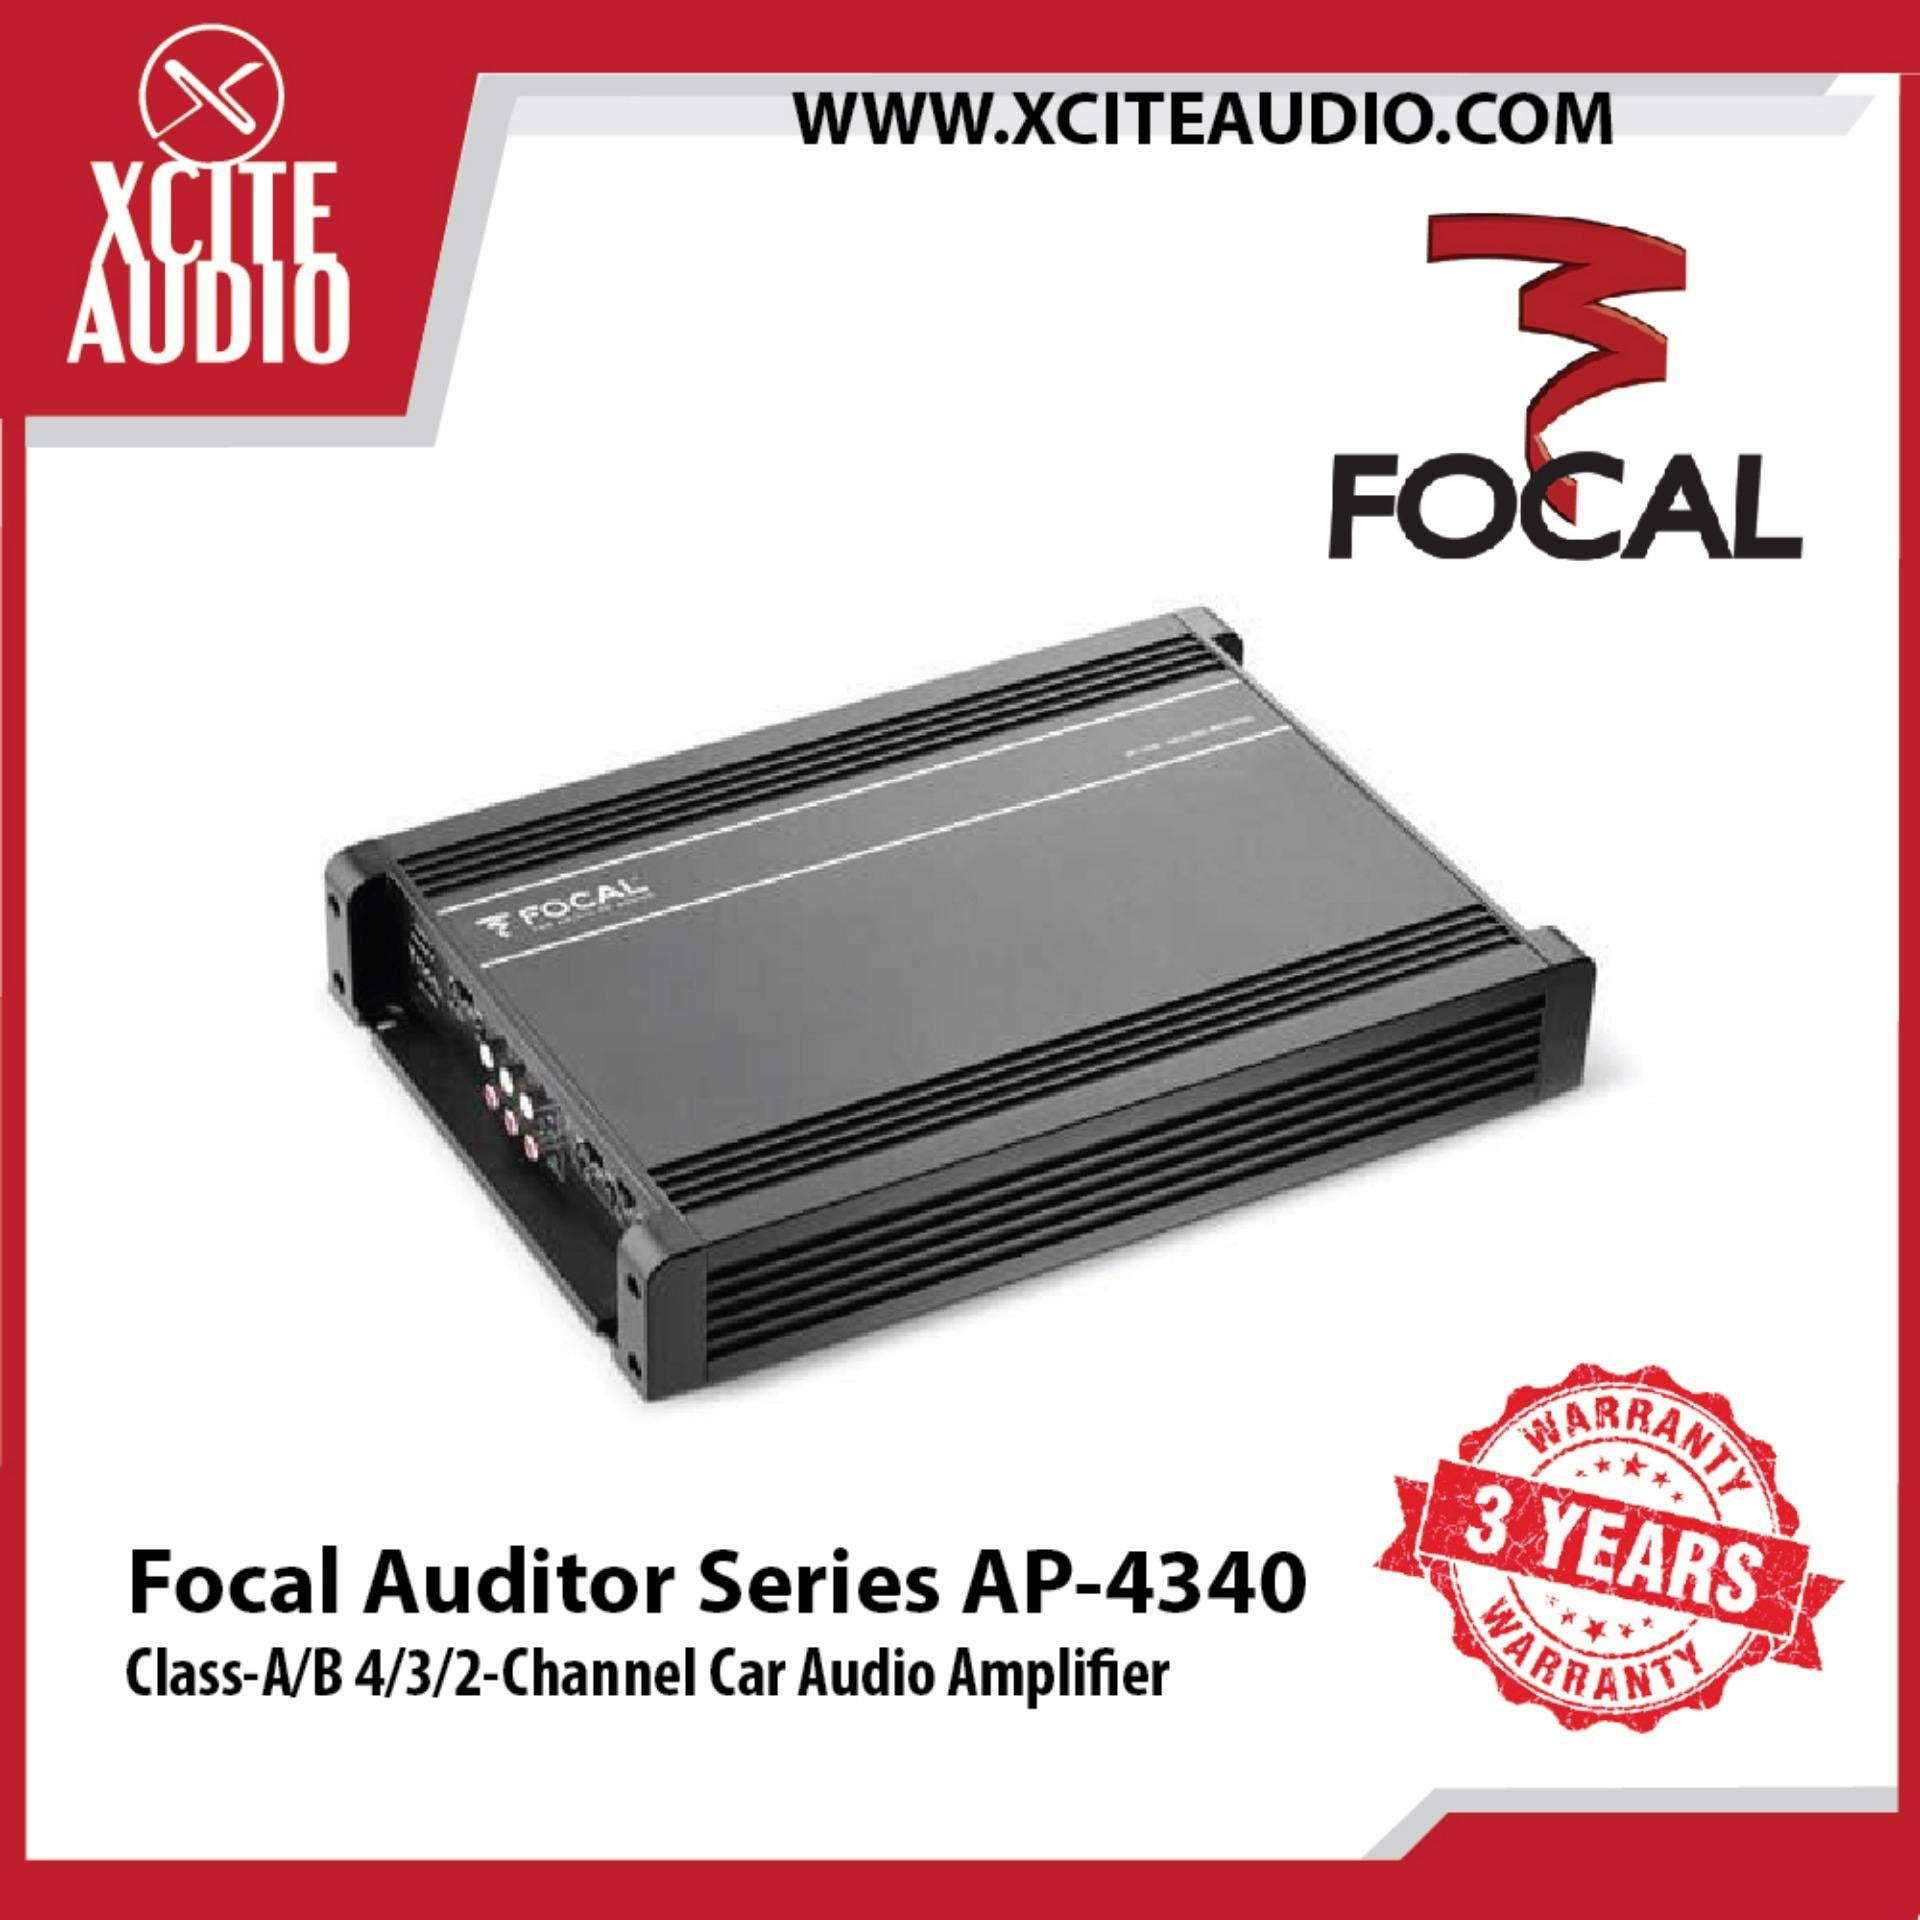 Focal AP-4340 Auditor Series Class-A/B 4/3/2-Channel Car Audio Amplifier - Xcite Audio